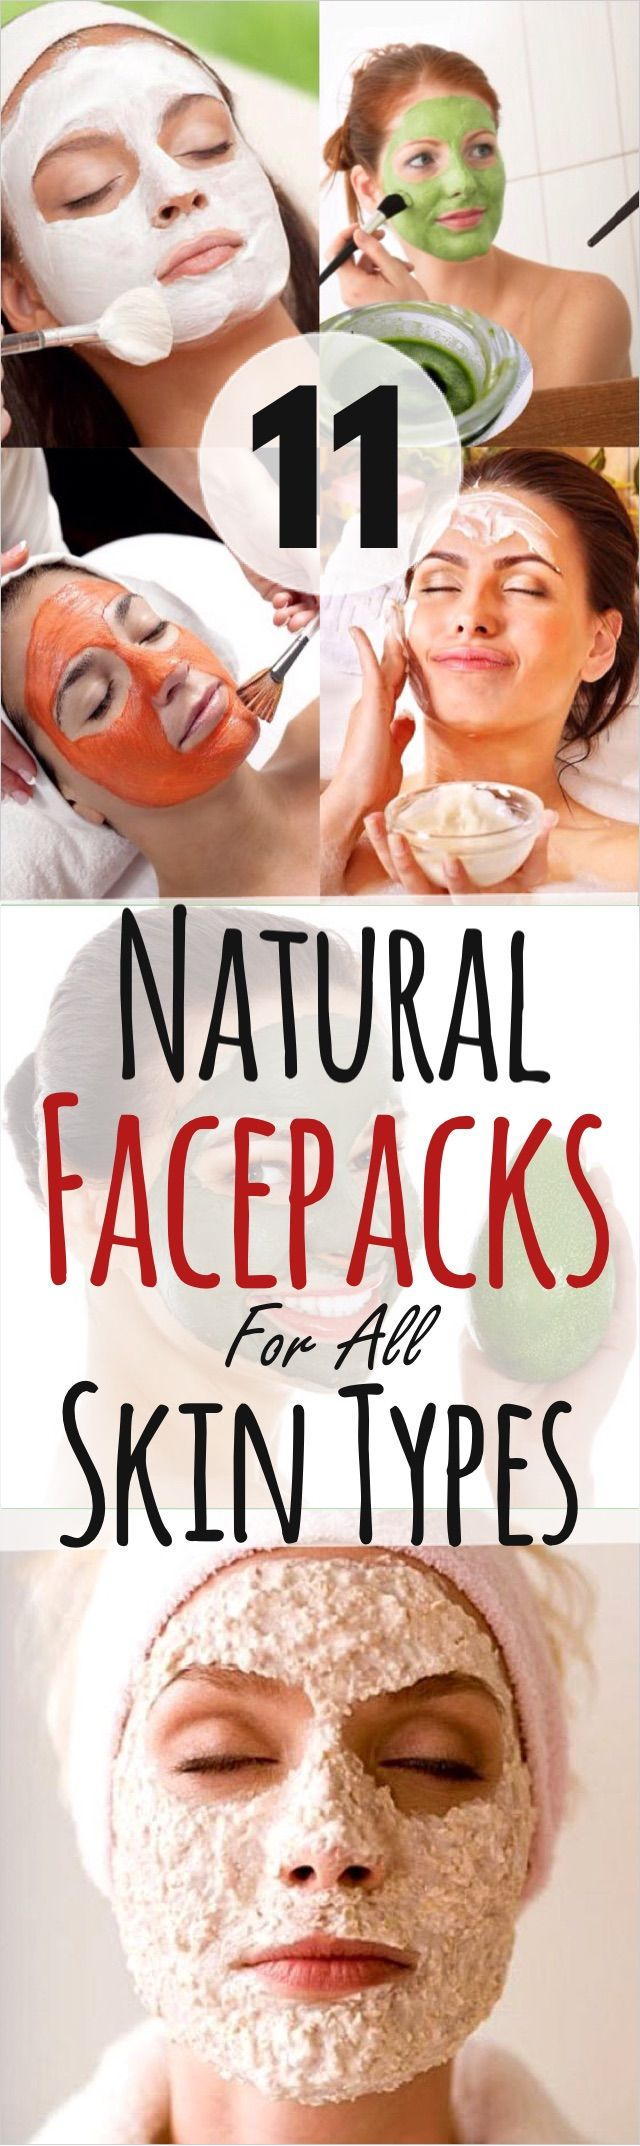 11 Natural Face Packs for all Skin Types – Face Masks for Clear Skin